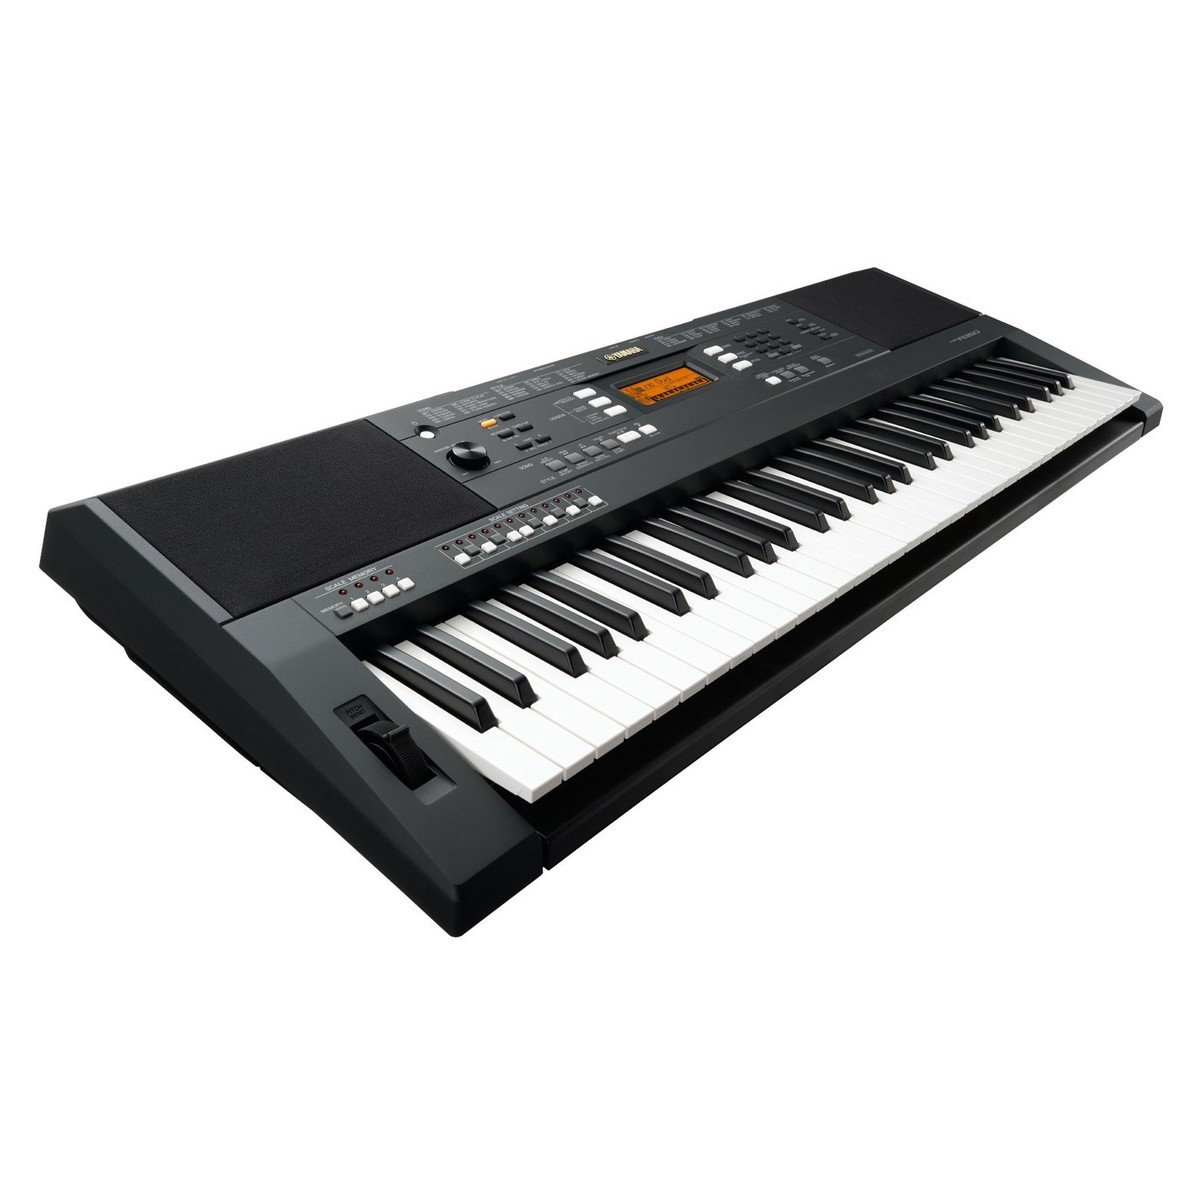 Yamaha psr a350 oriental portable keyboard black at for Yamaha professional keyboard price